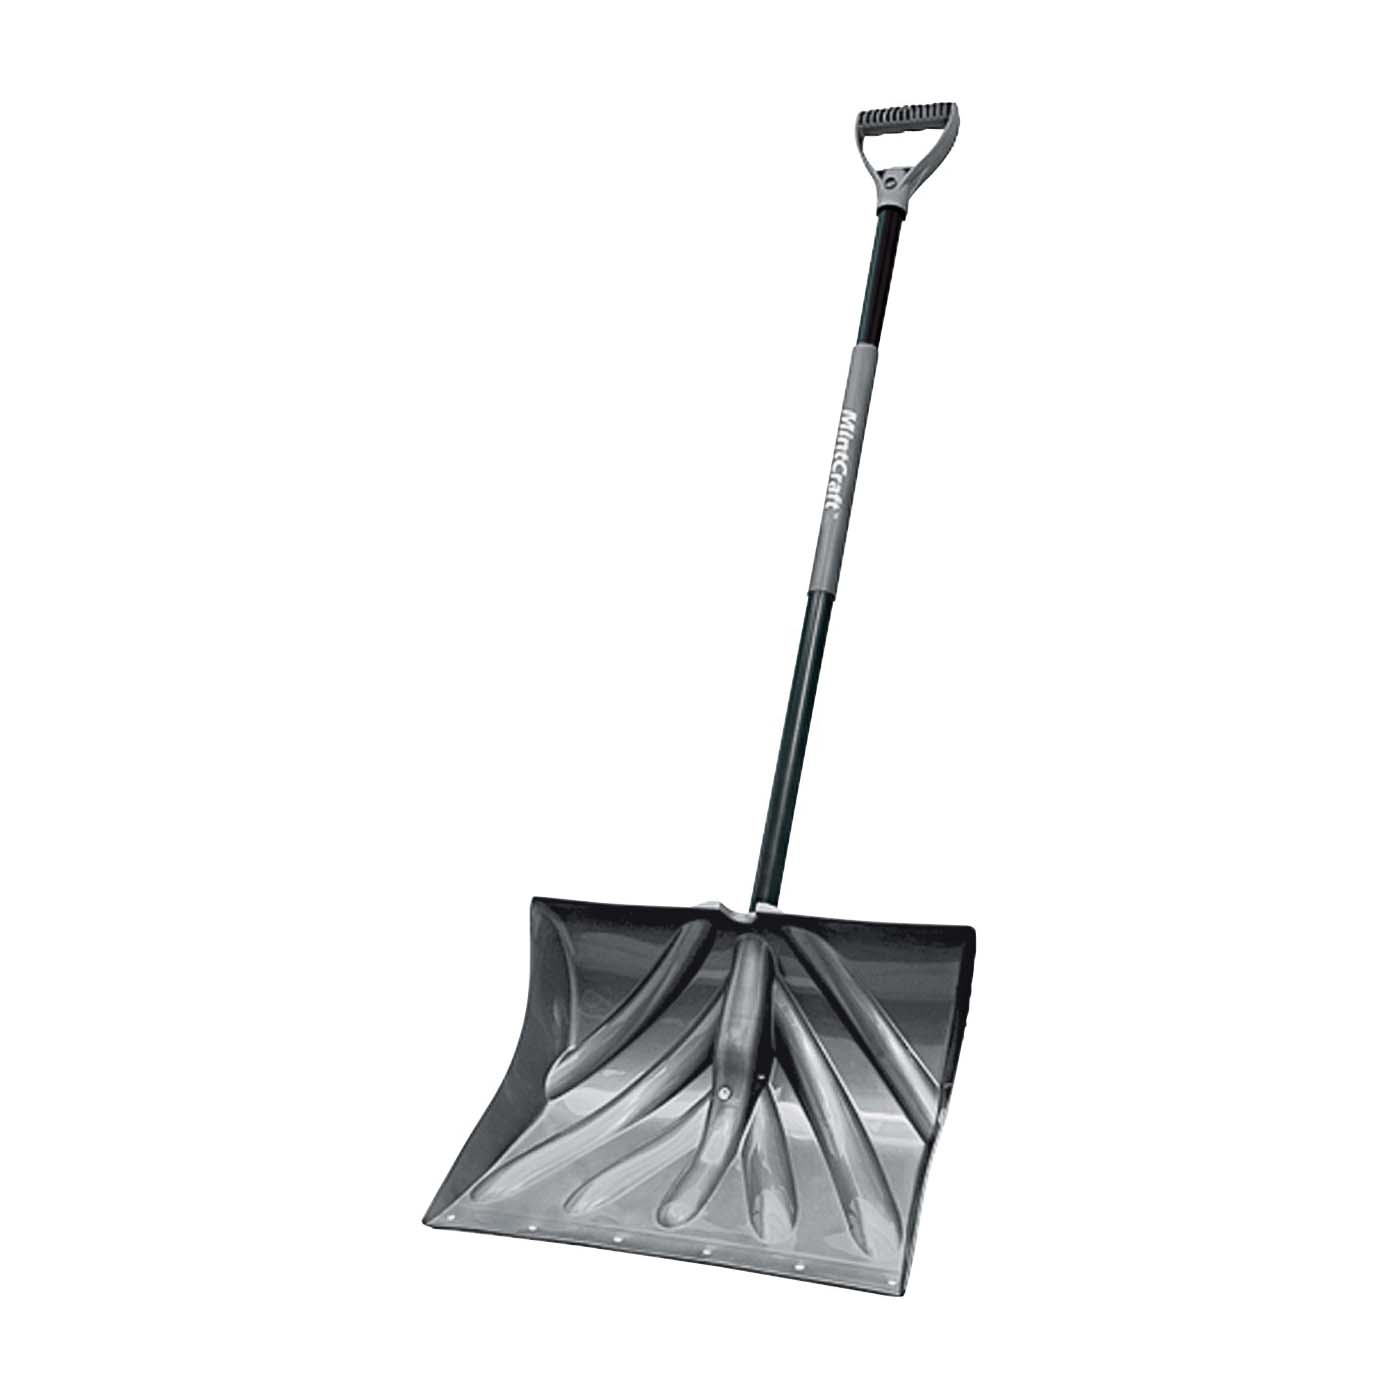 Picture of Vulcan 34631 Snow Shovel with Sleeve, Poly Blade, Steel Handle